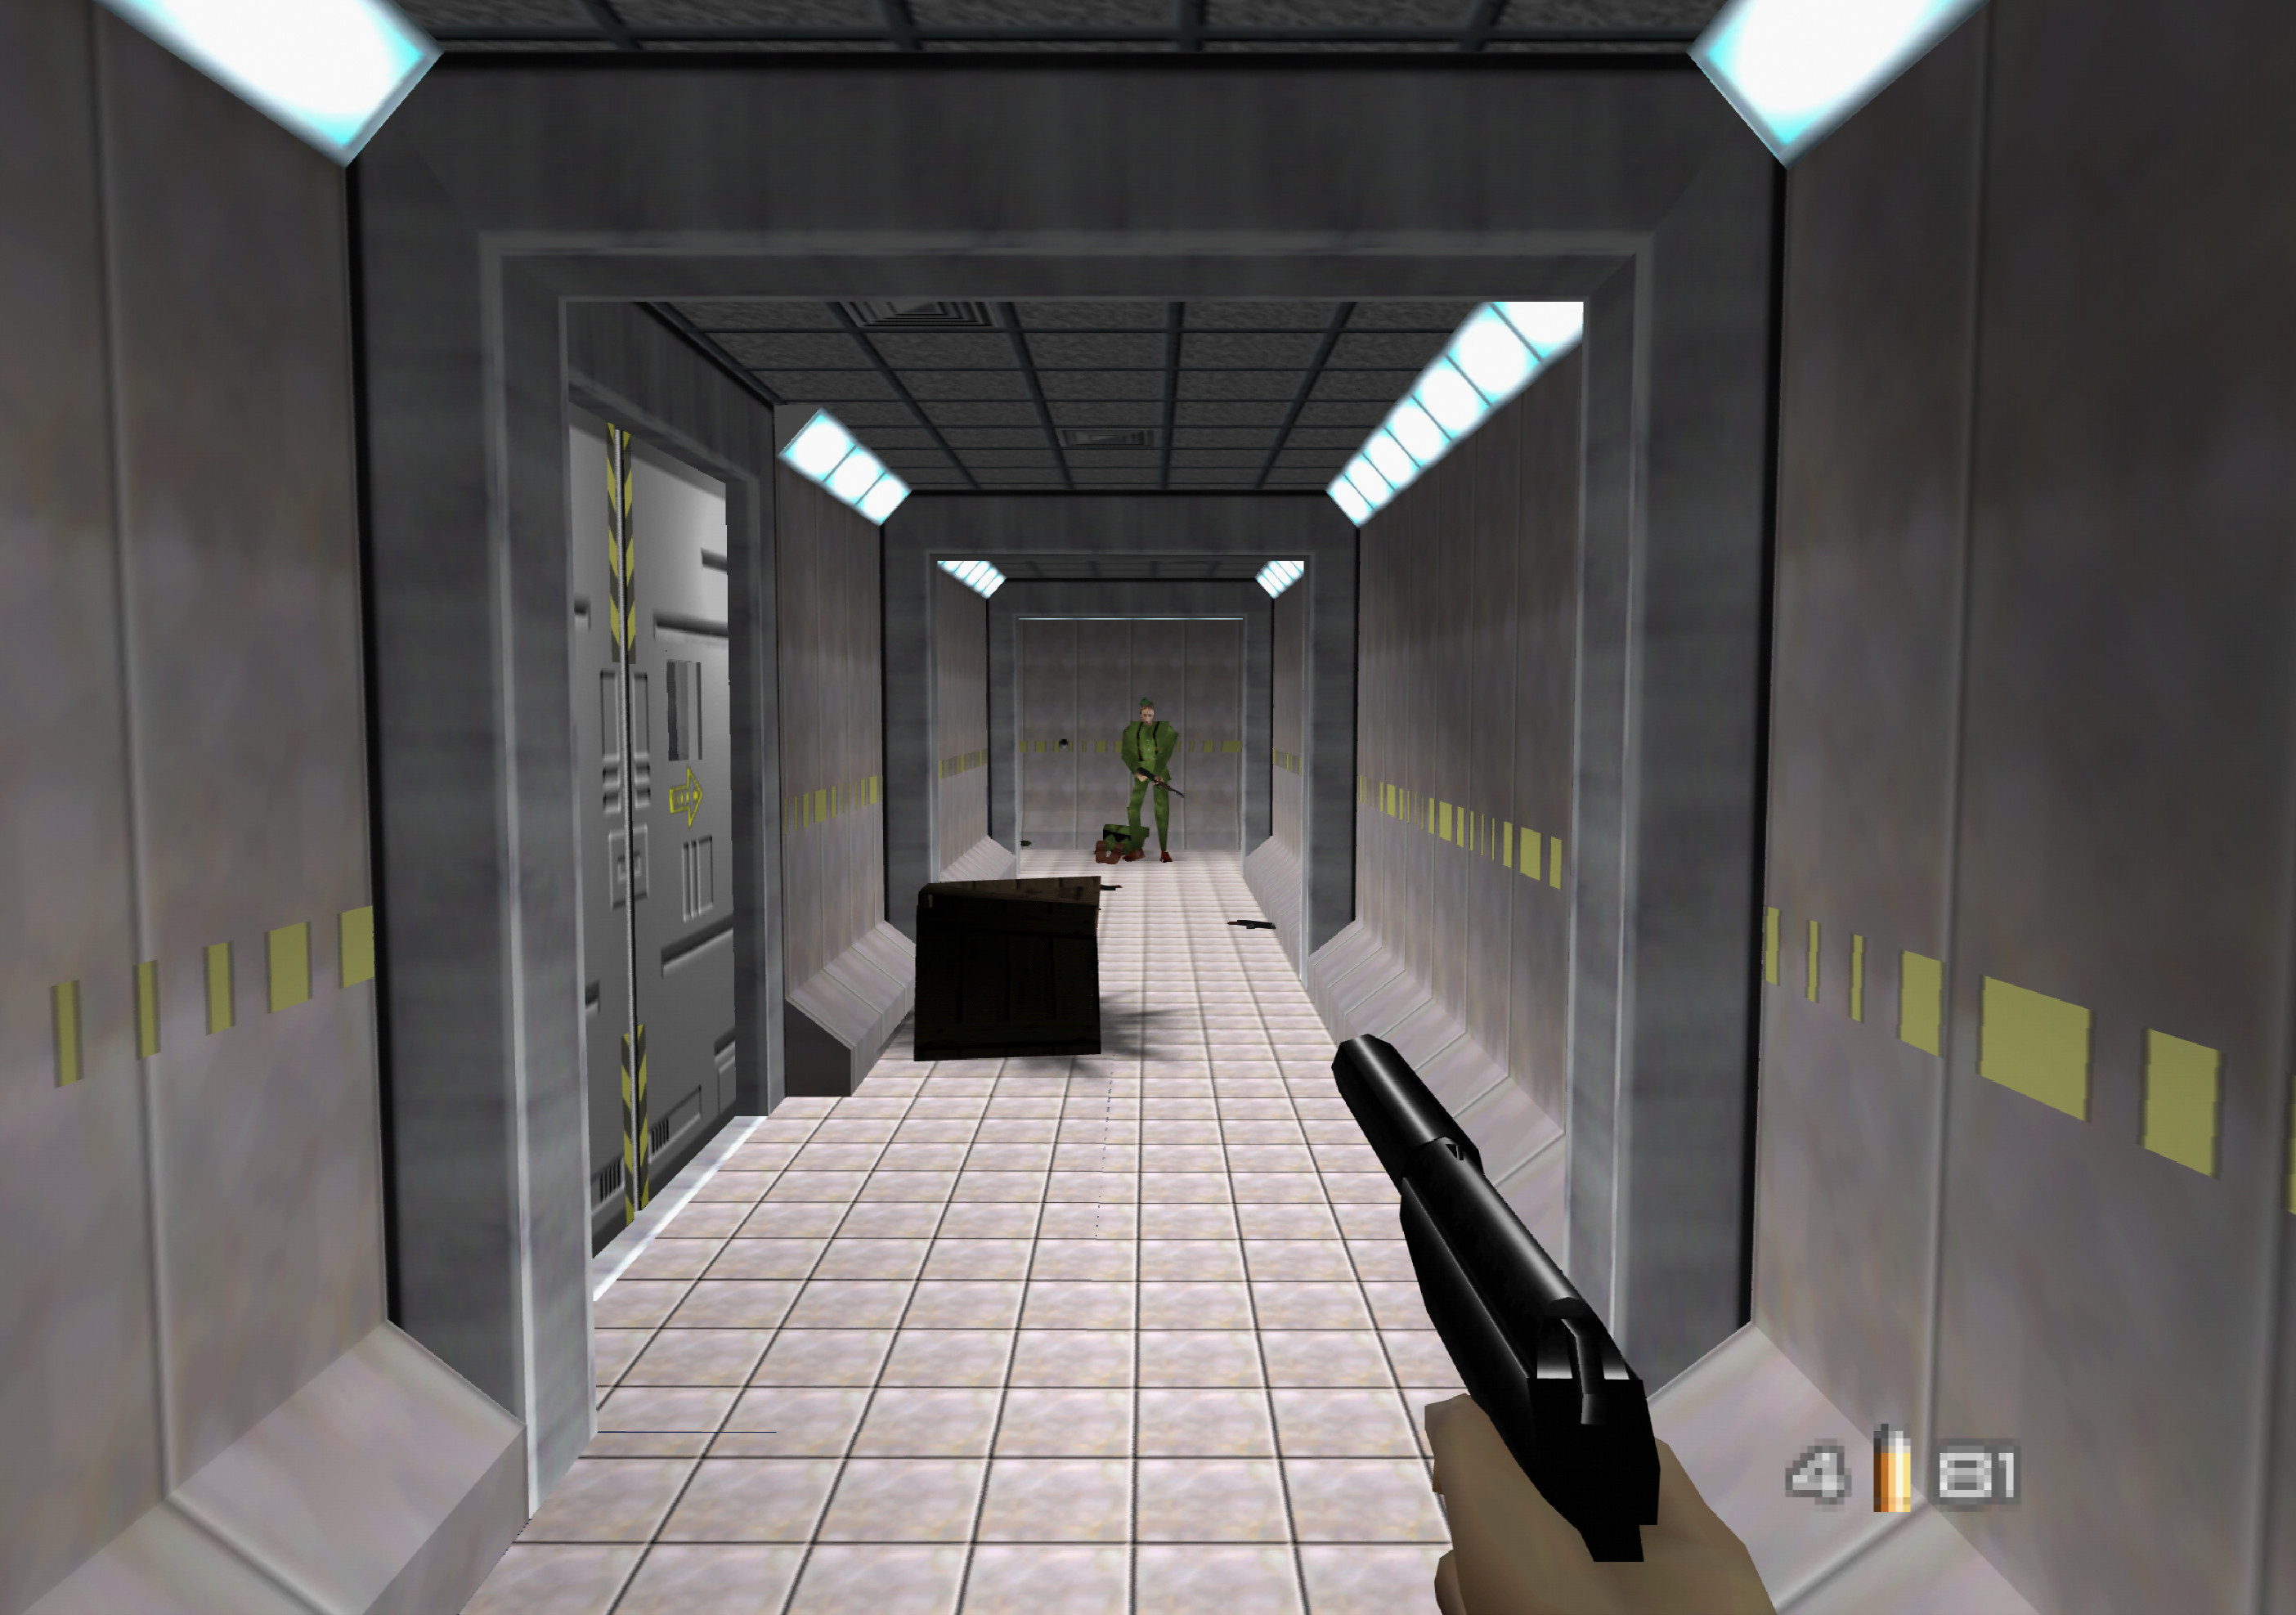 GoldenEye 007 running with ParaLLEl RDP at 8x internal upscale